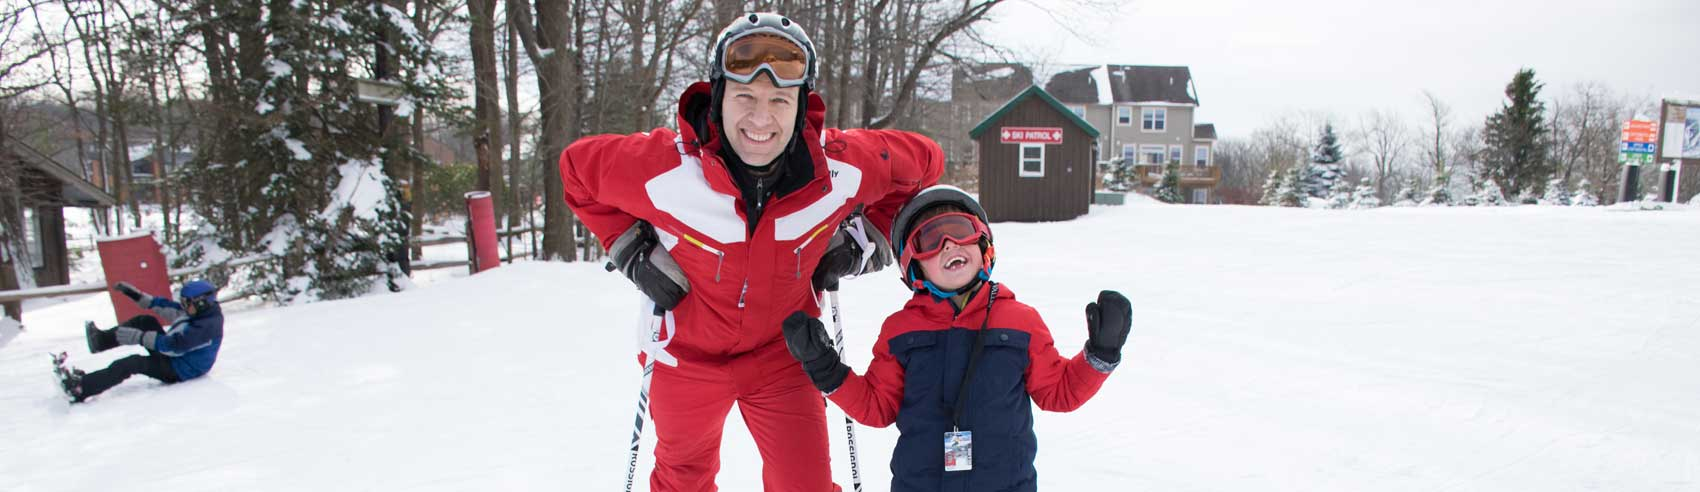 hv-man-and-child-skiing